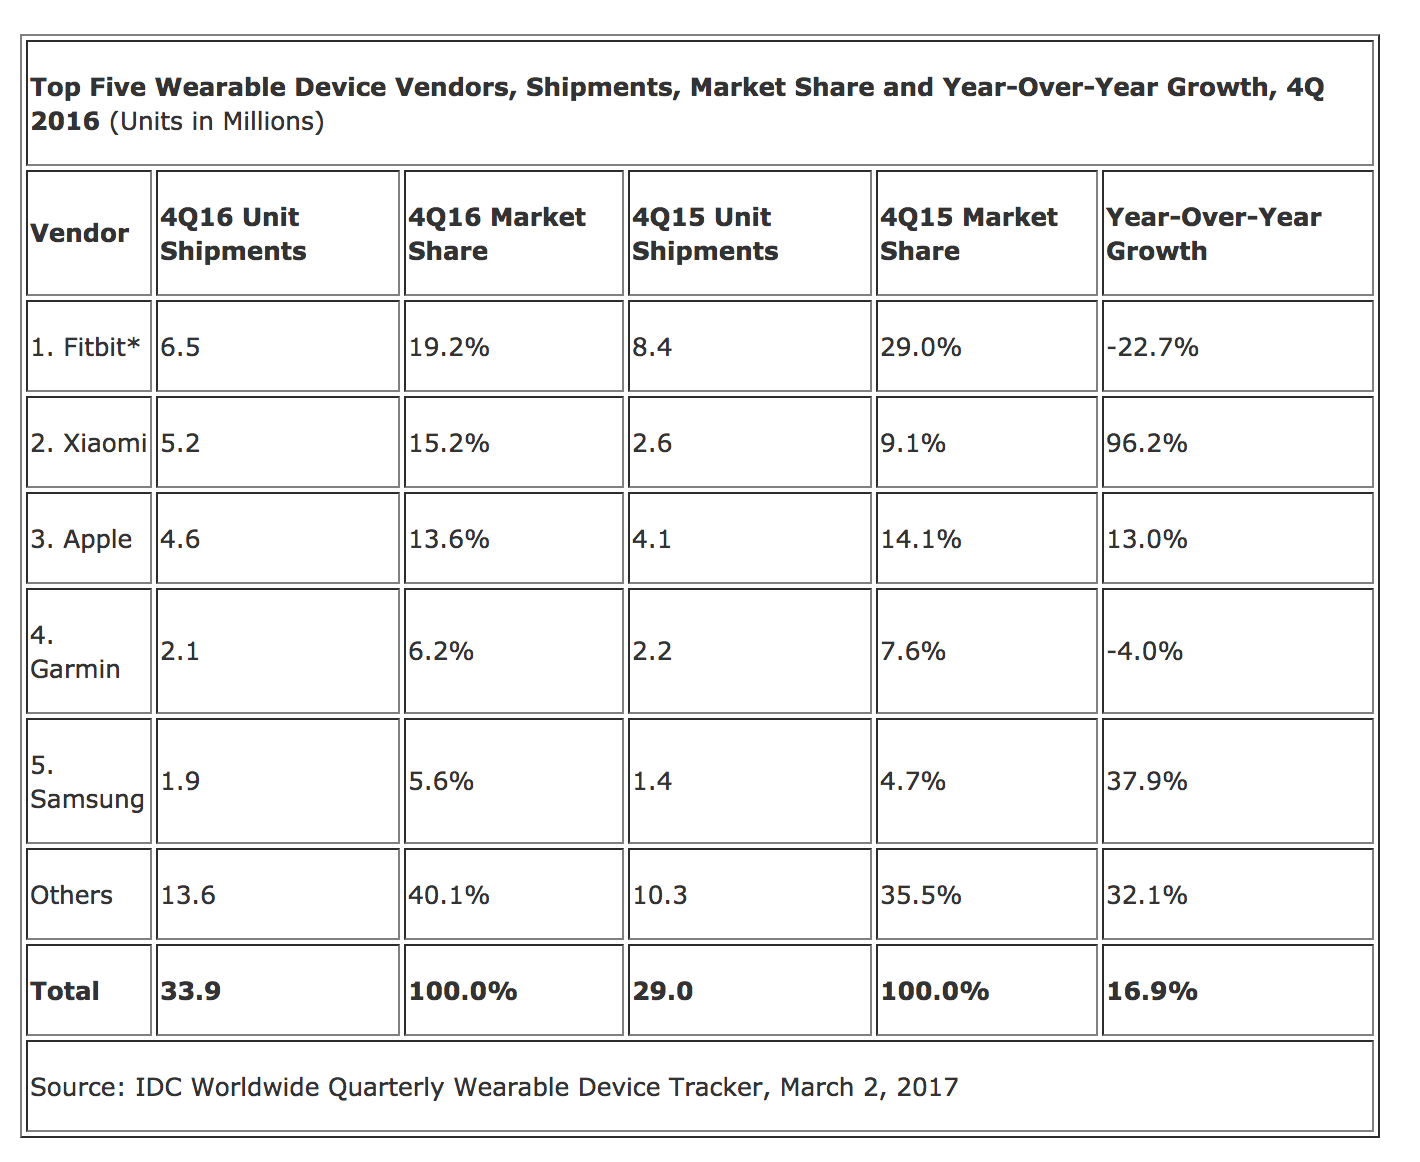 wearables marketshare in Q4 2016